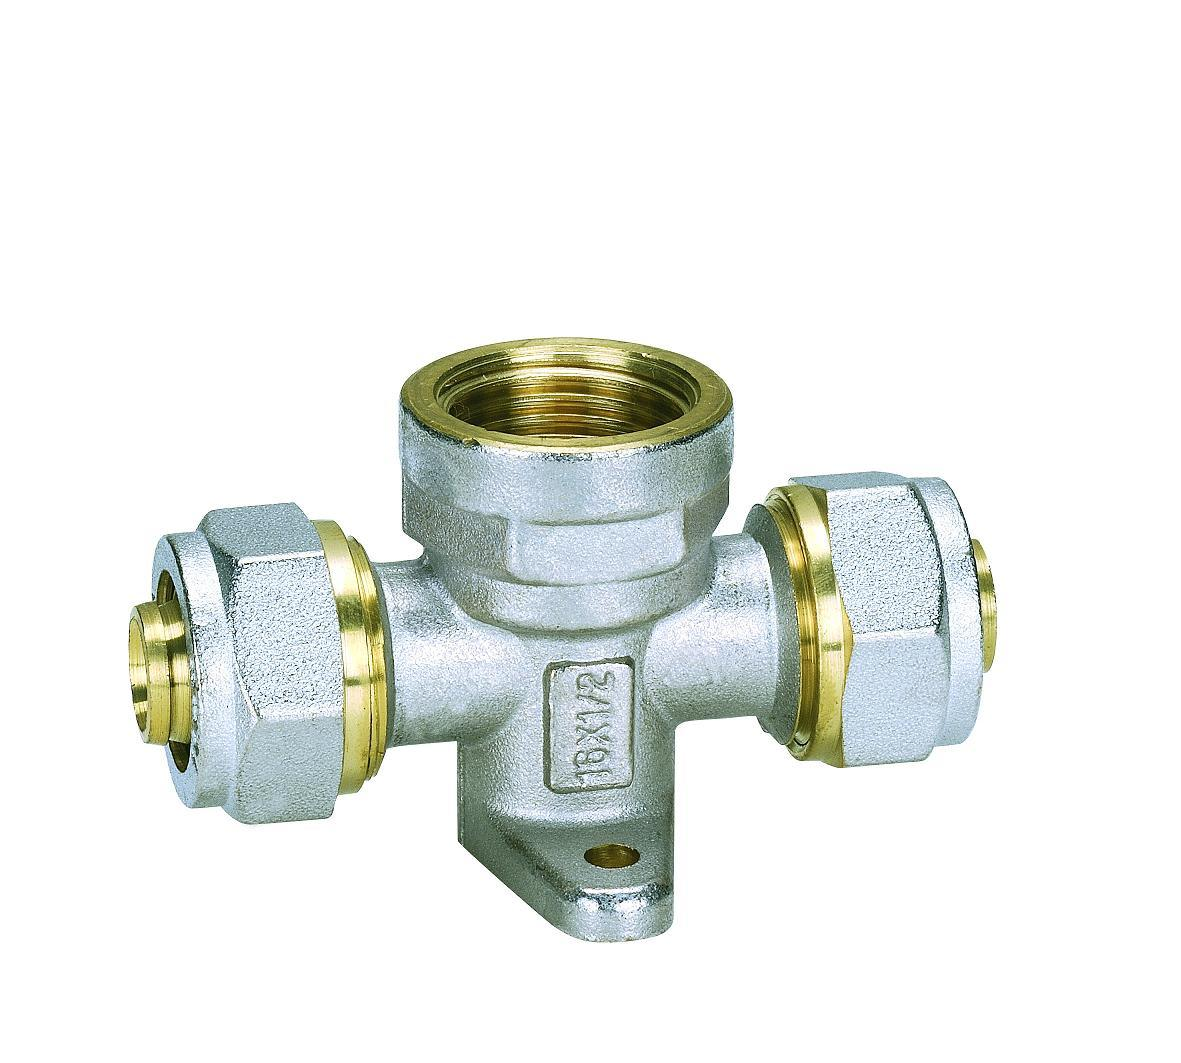 Female Tee with Wall-Plate (Hz8024) for Ktm Plastic Pipe Both Hot Water Pipe and Cold Water Pipe